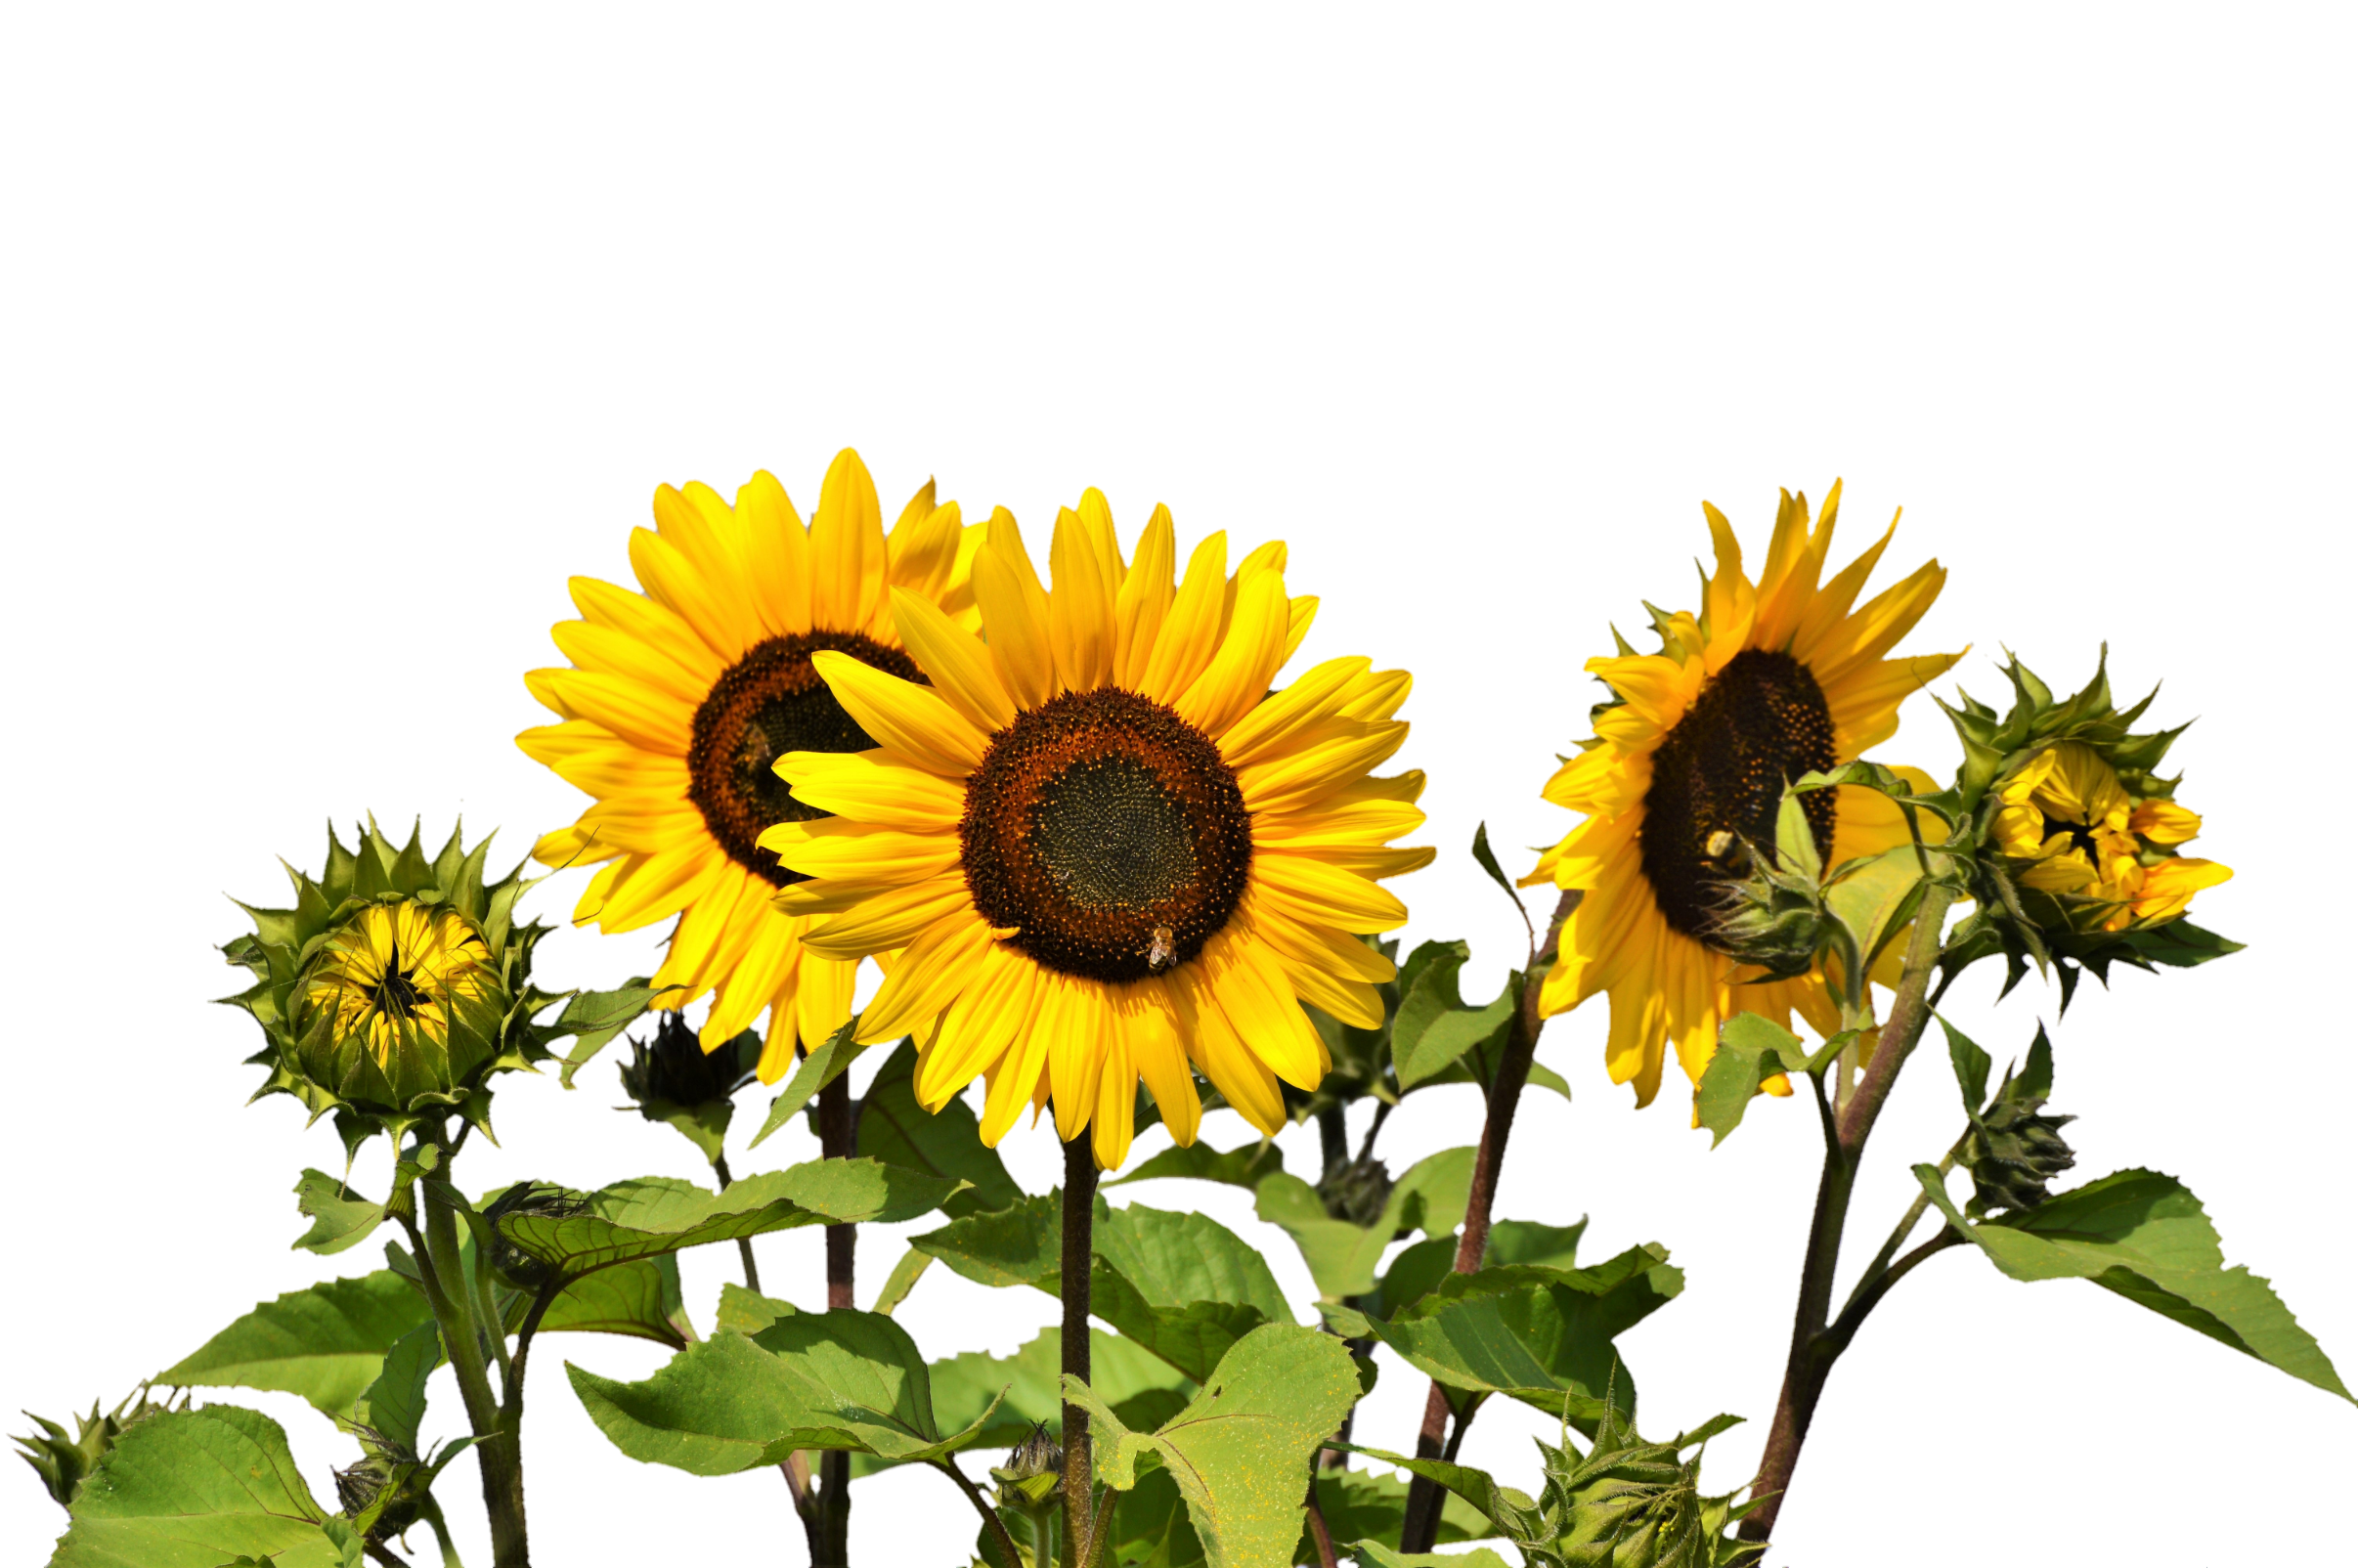 Sunflowers PNG Image Sunflower png, Yellow flowers